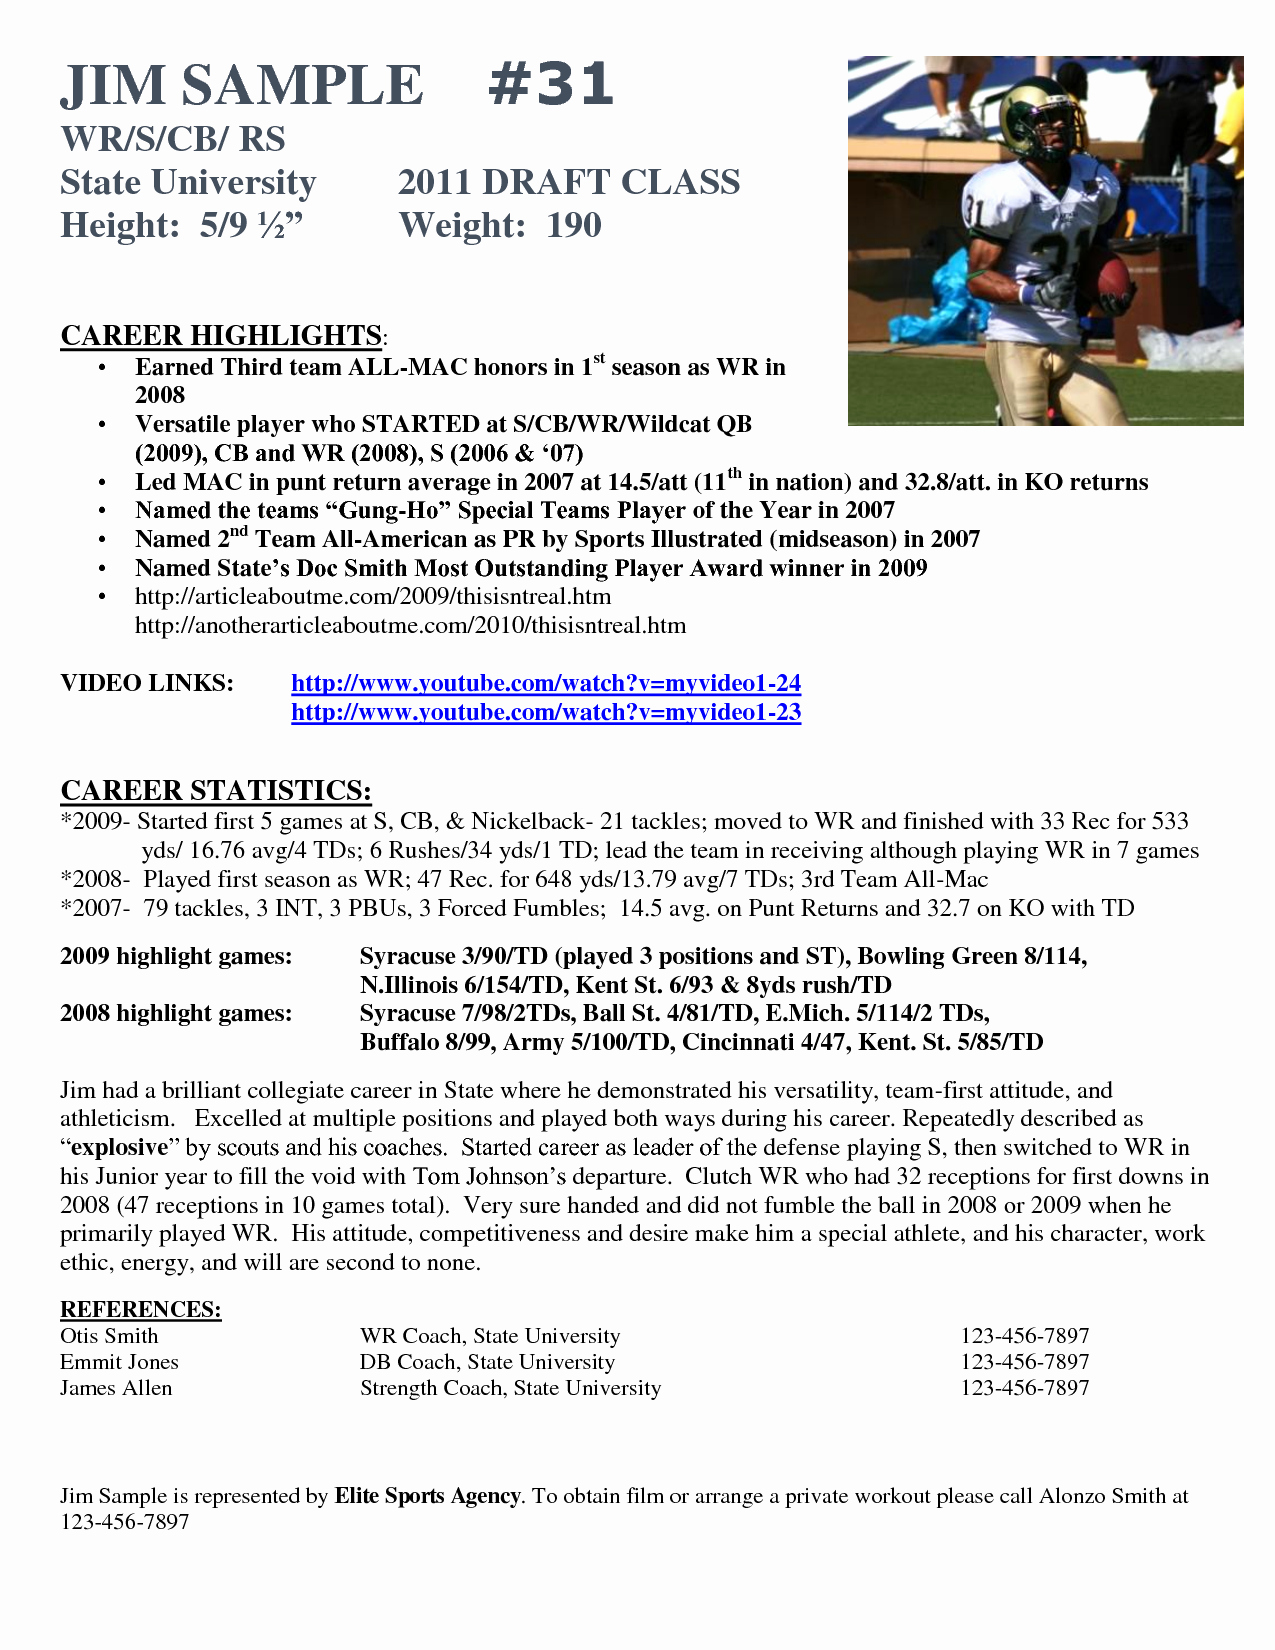 Football Player Profile Template Inspirational Best S Of athlete Bio Template Football Player